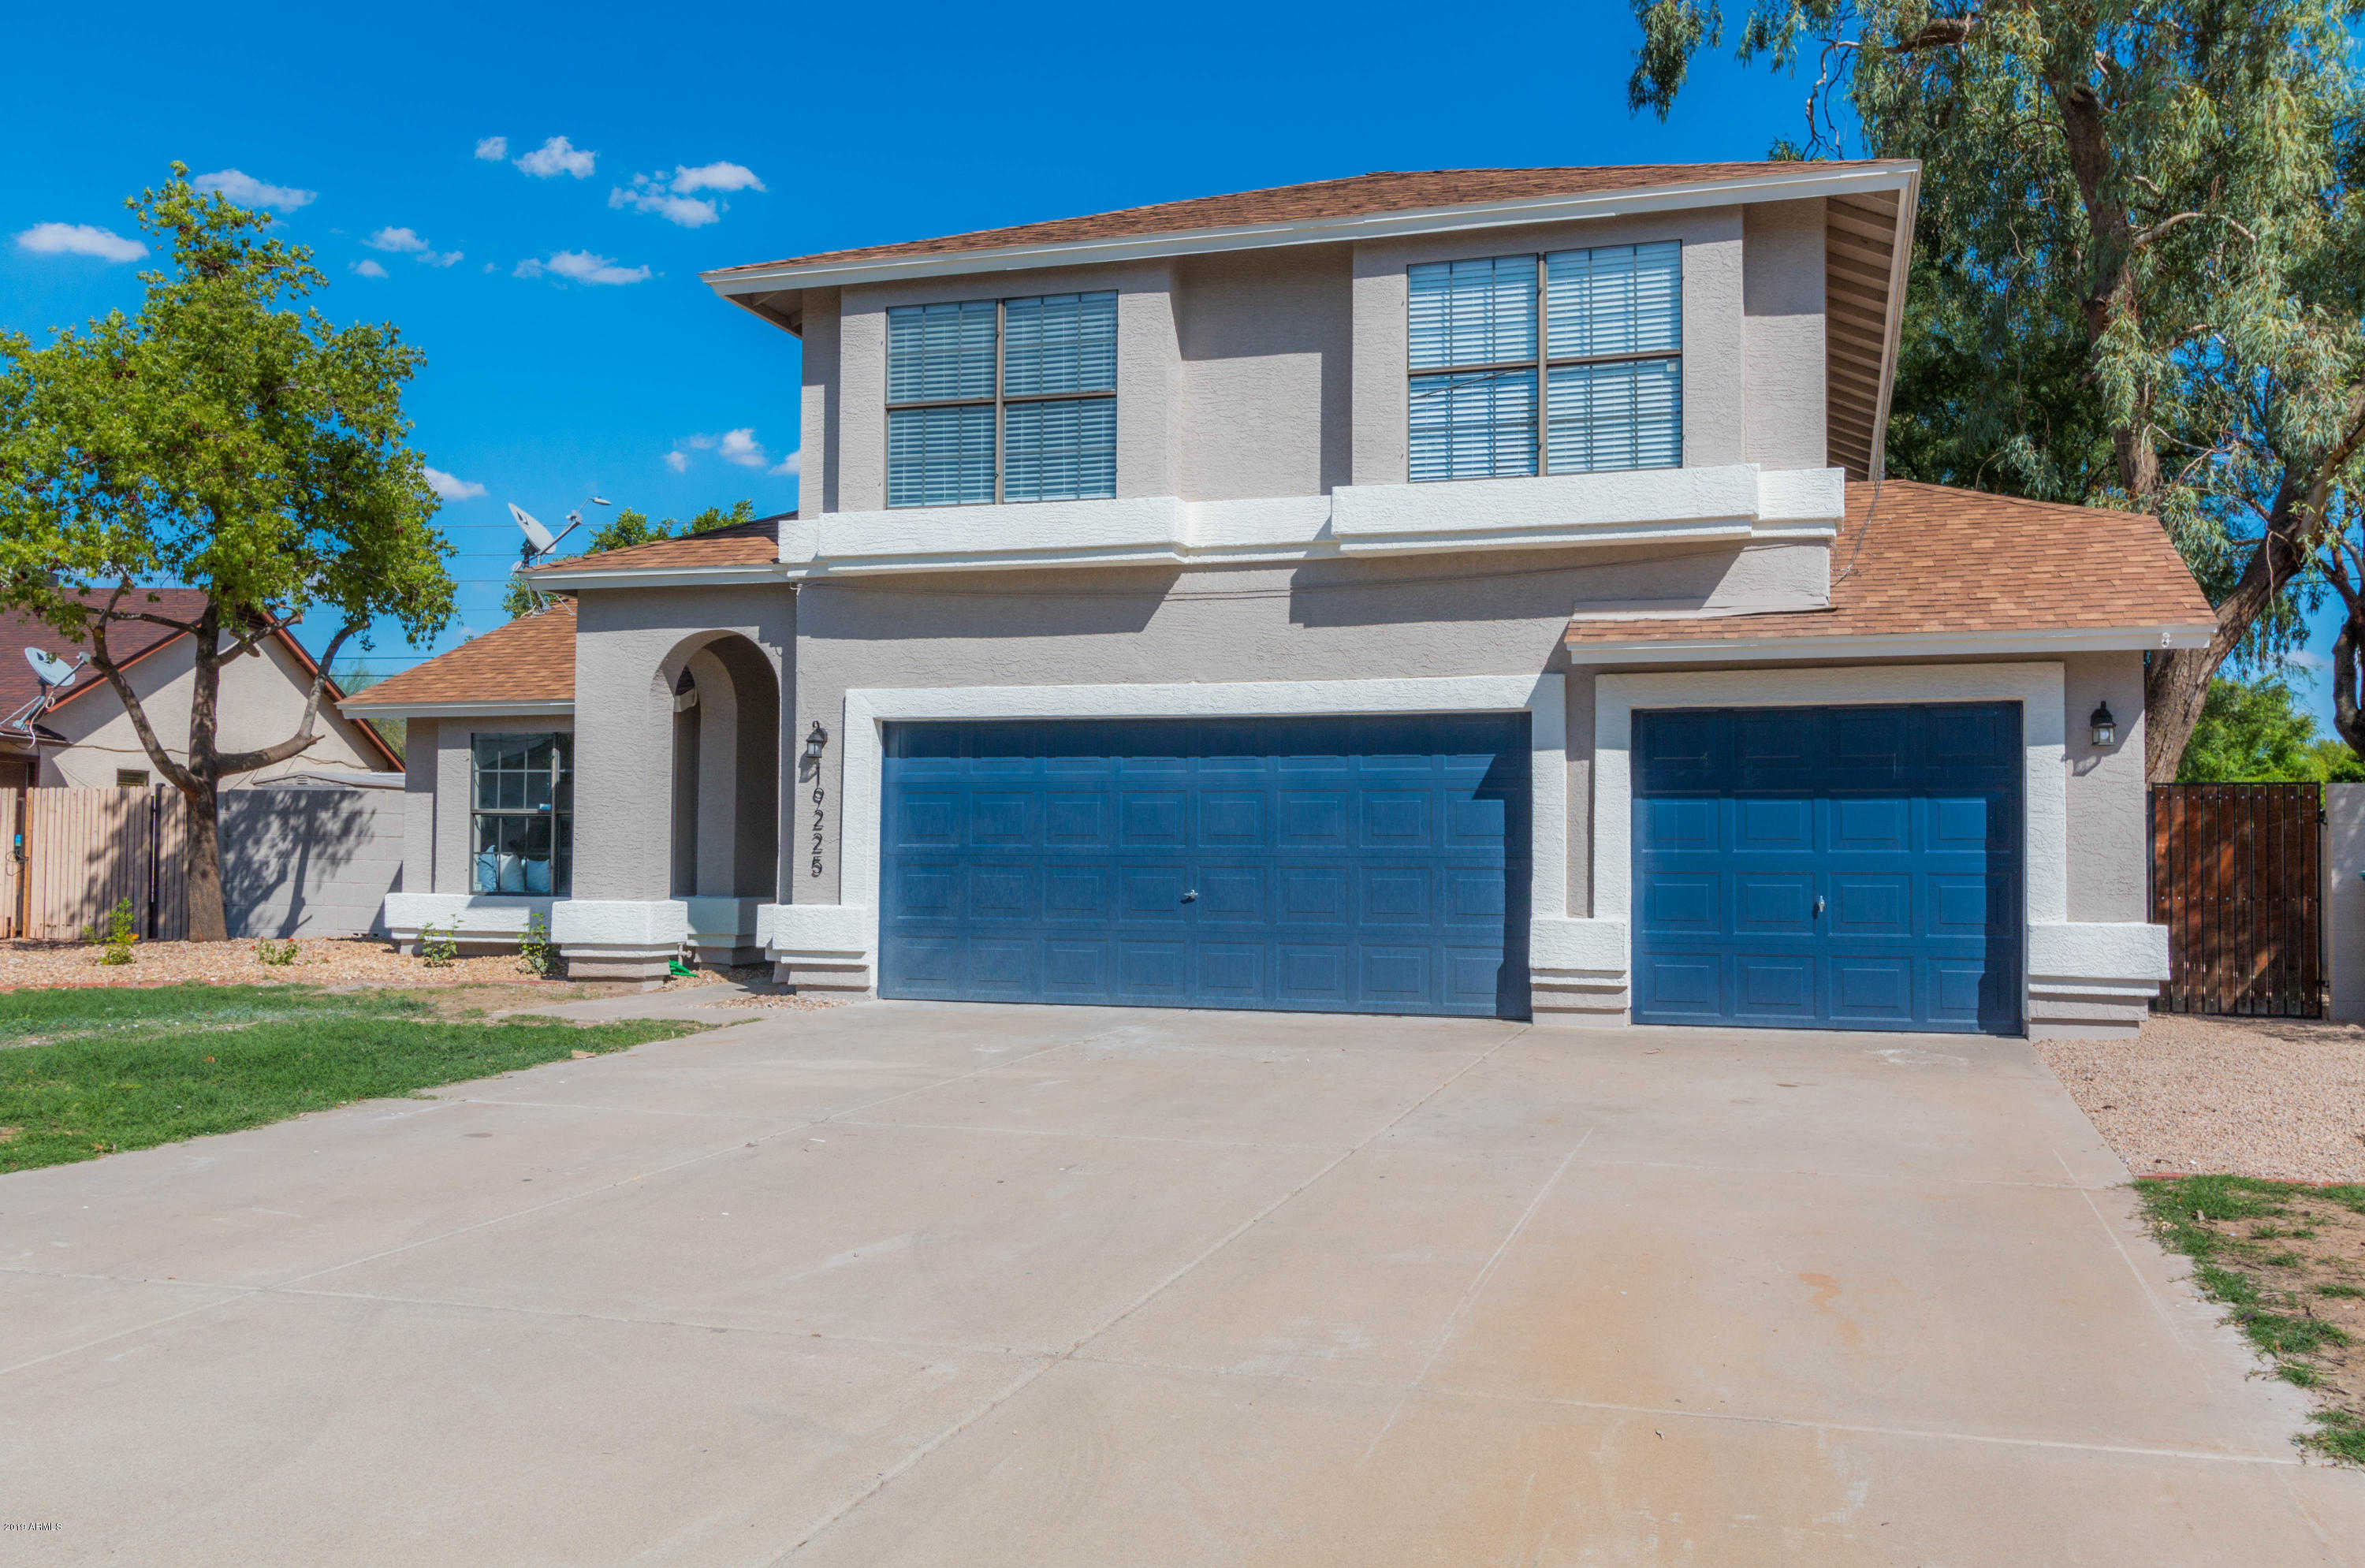 $328,900 - 4Br/3Ba - Home for Sale in Overland Trail Three Lot 313-465, Glendale